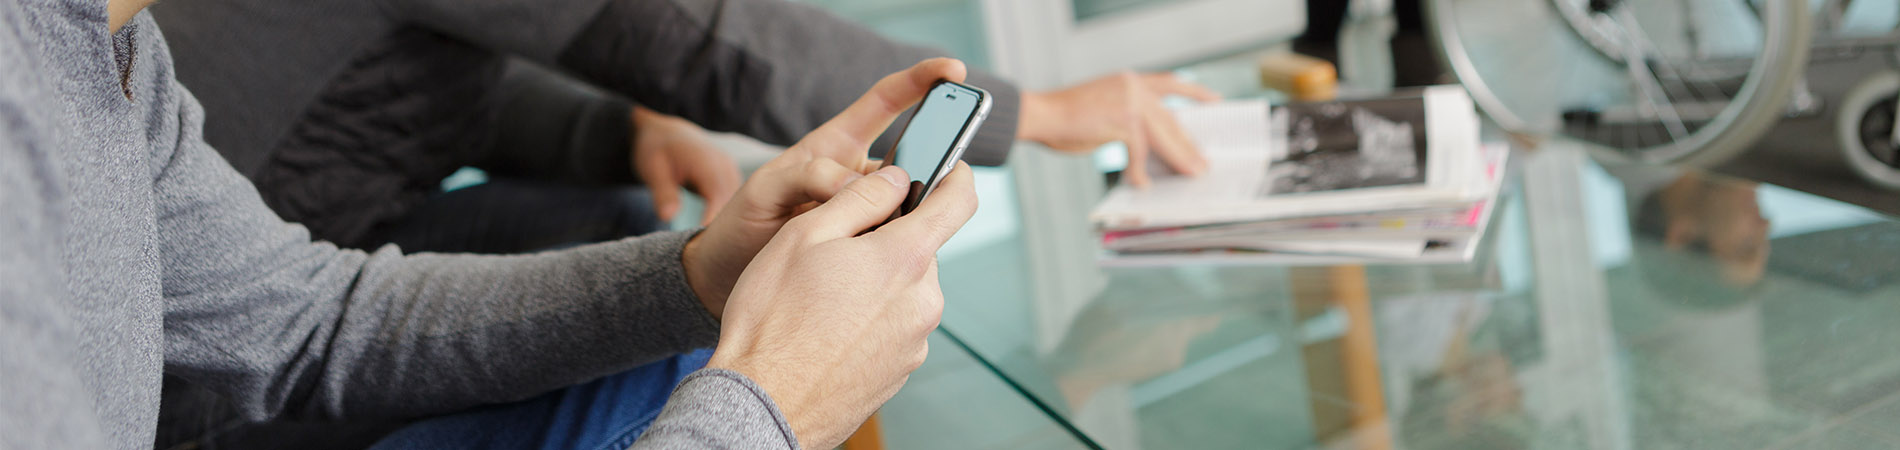 A young male patient utilizing digital check-ins at an appointment on his cellular device.